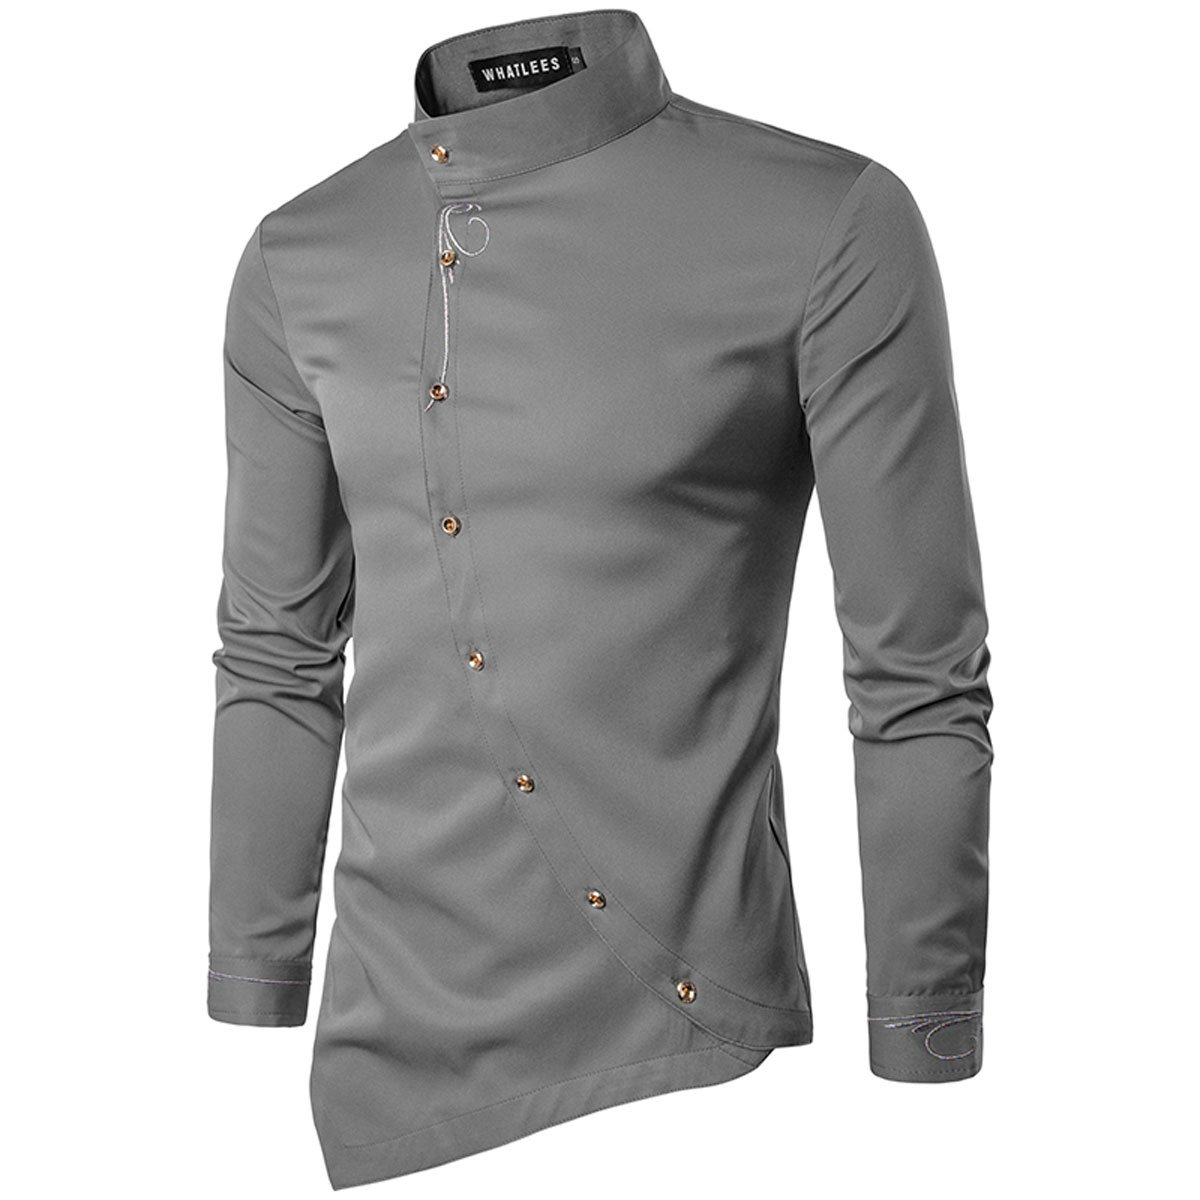 8b2f0b4fa2a ZYFGfree Embroidery Design Button Down Long Sleeve Shirts For Men Slim Fit Oblique  Stand Up Solid Color Chemise Homme at Amazon Men's Clothing store: